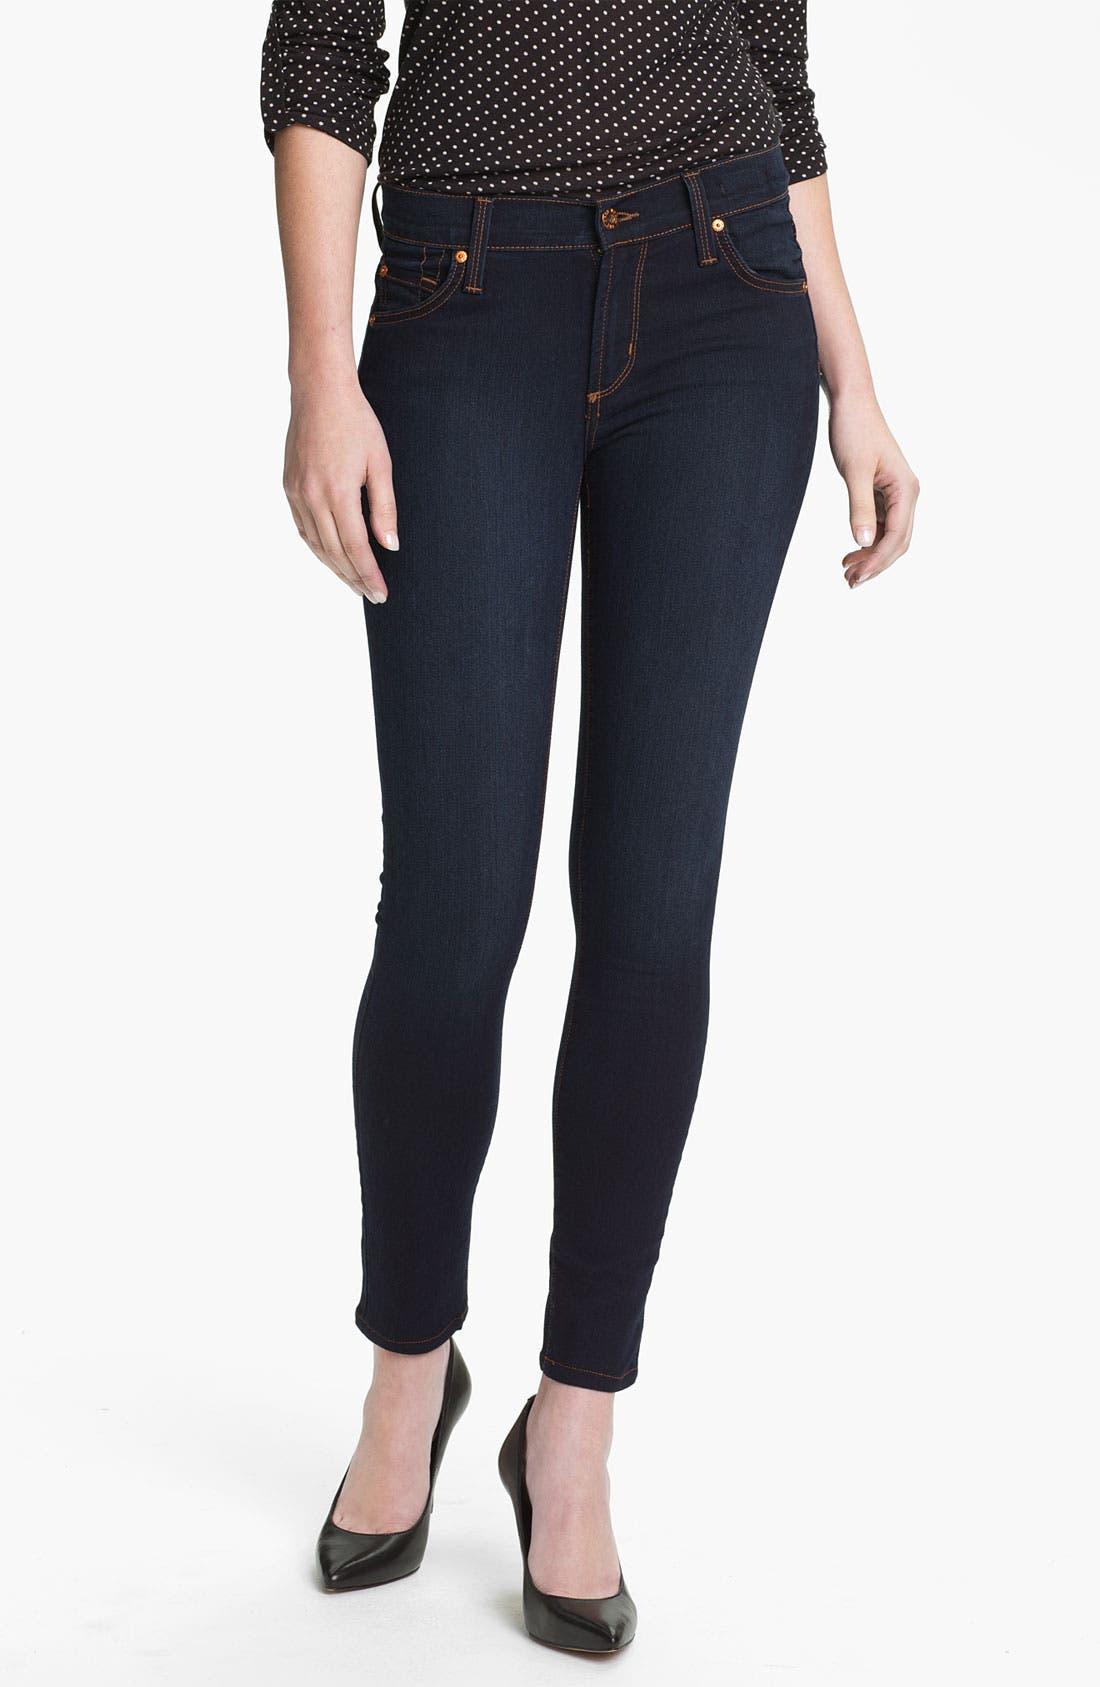 Main Image - James Jeans Stretch Denim Leggings (Petite) (Online Only)